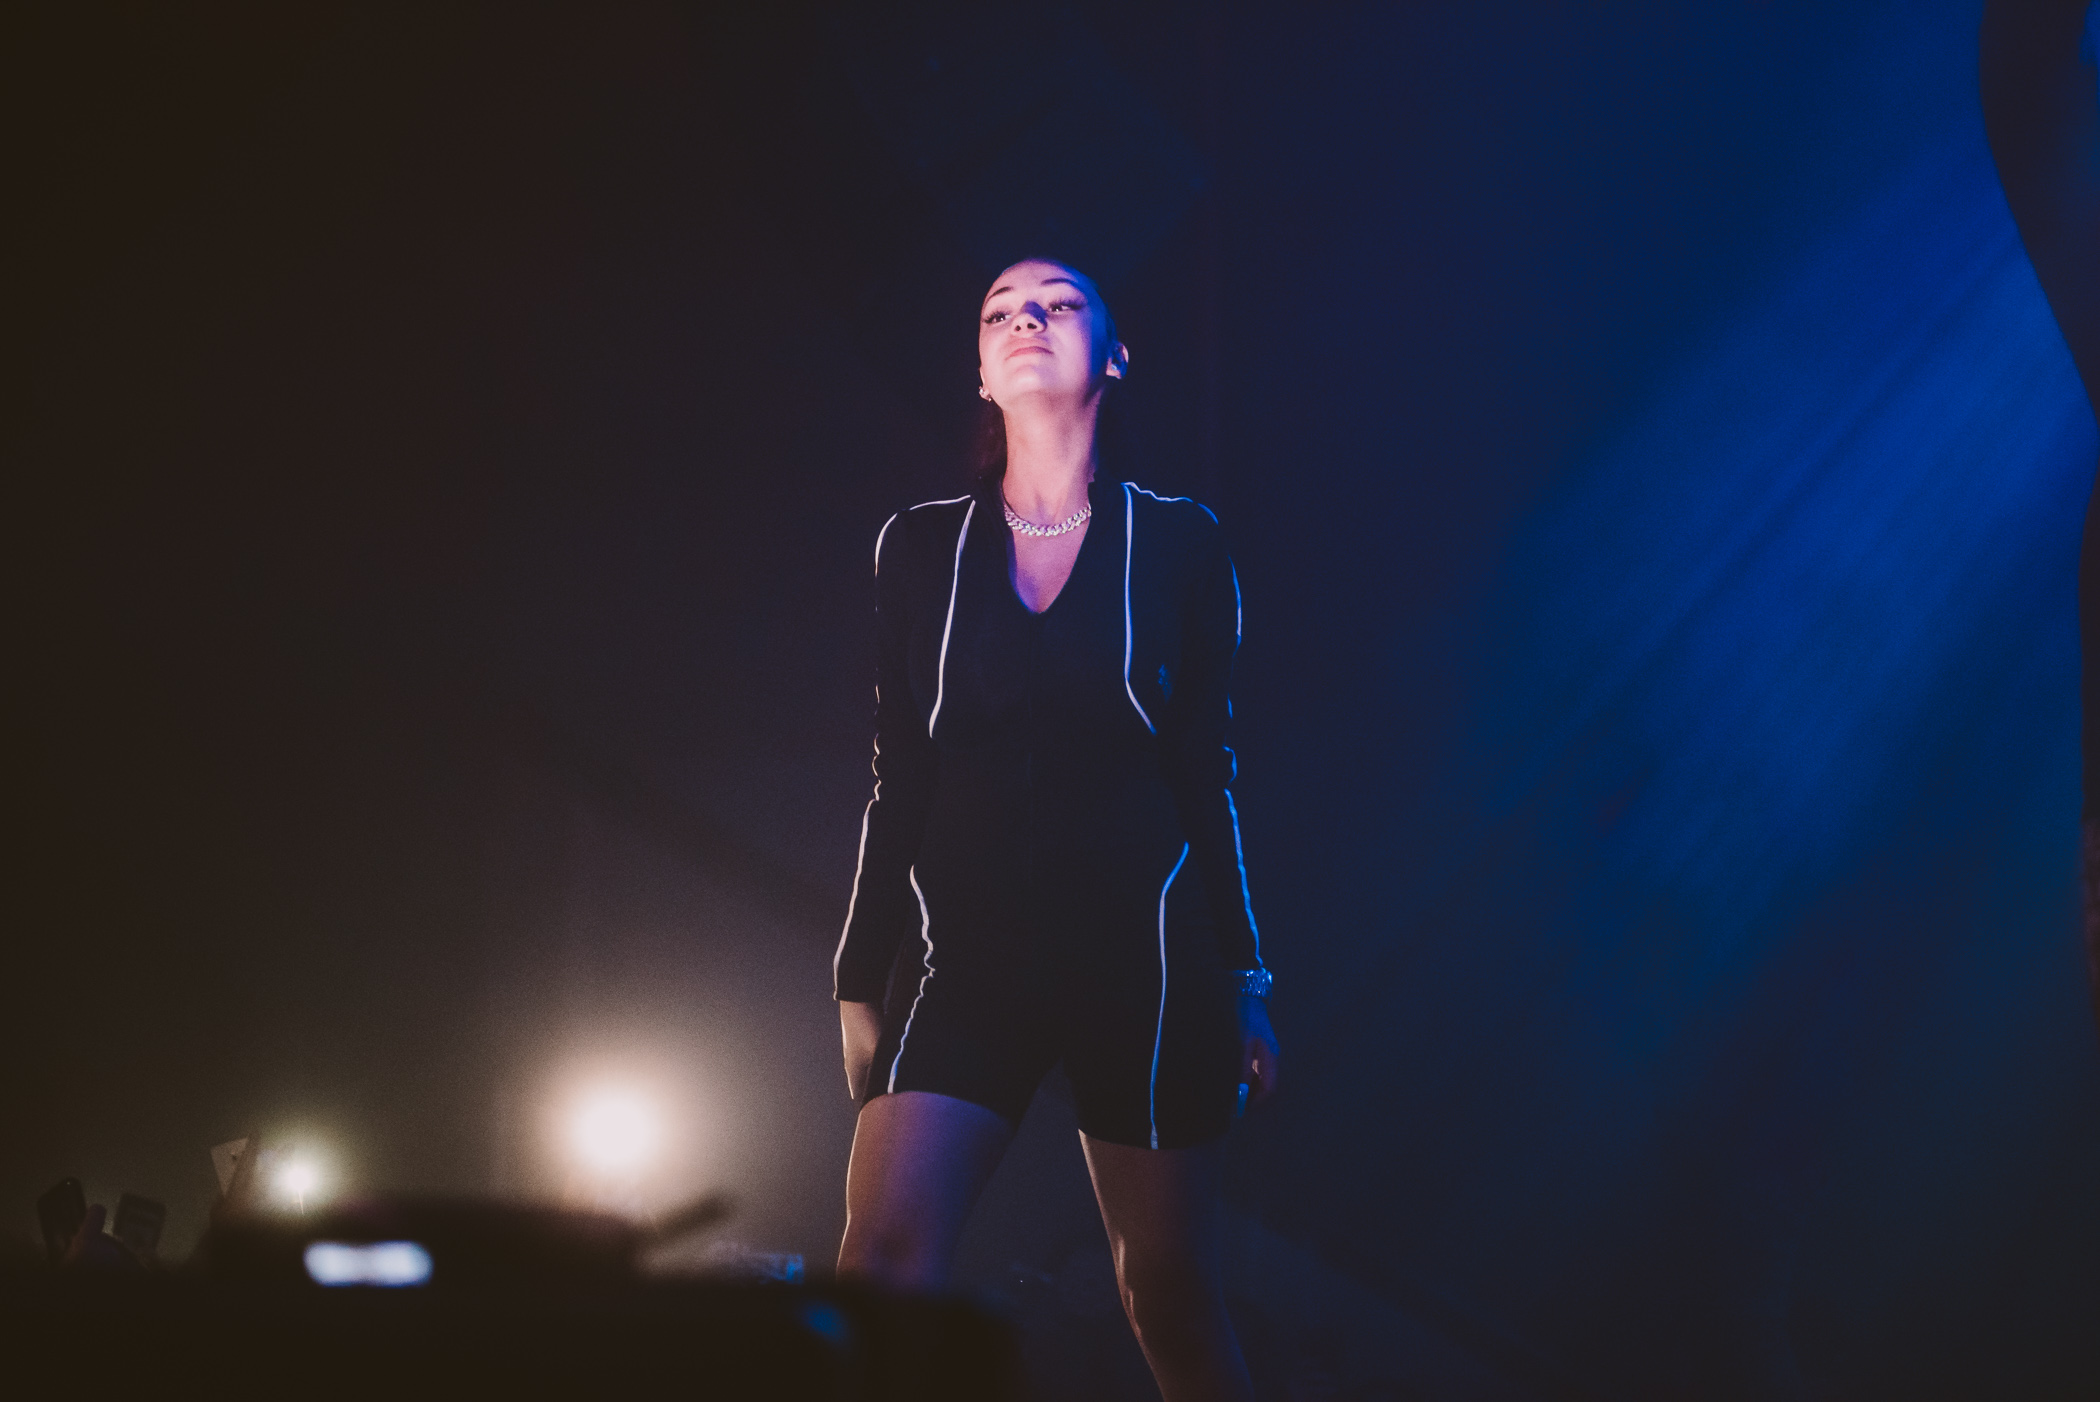 1_Bhad_Bhabie-VENUE-Timothy_Nguyen-20190510 (32 of 45).JPG